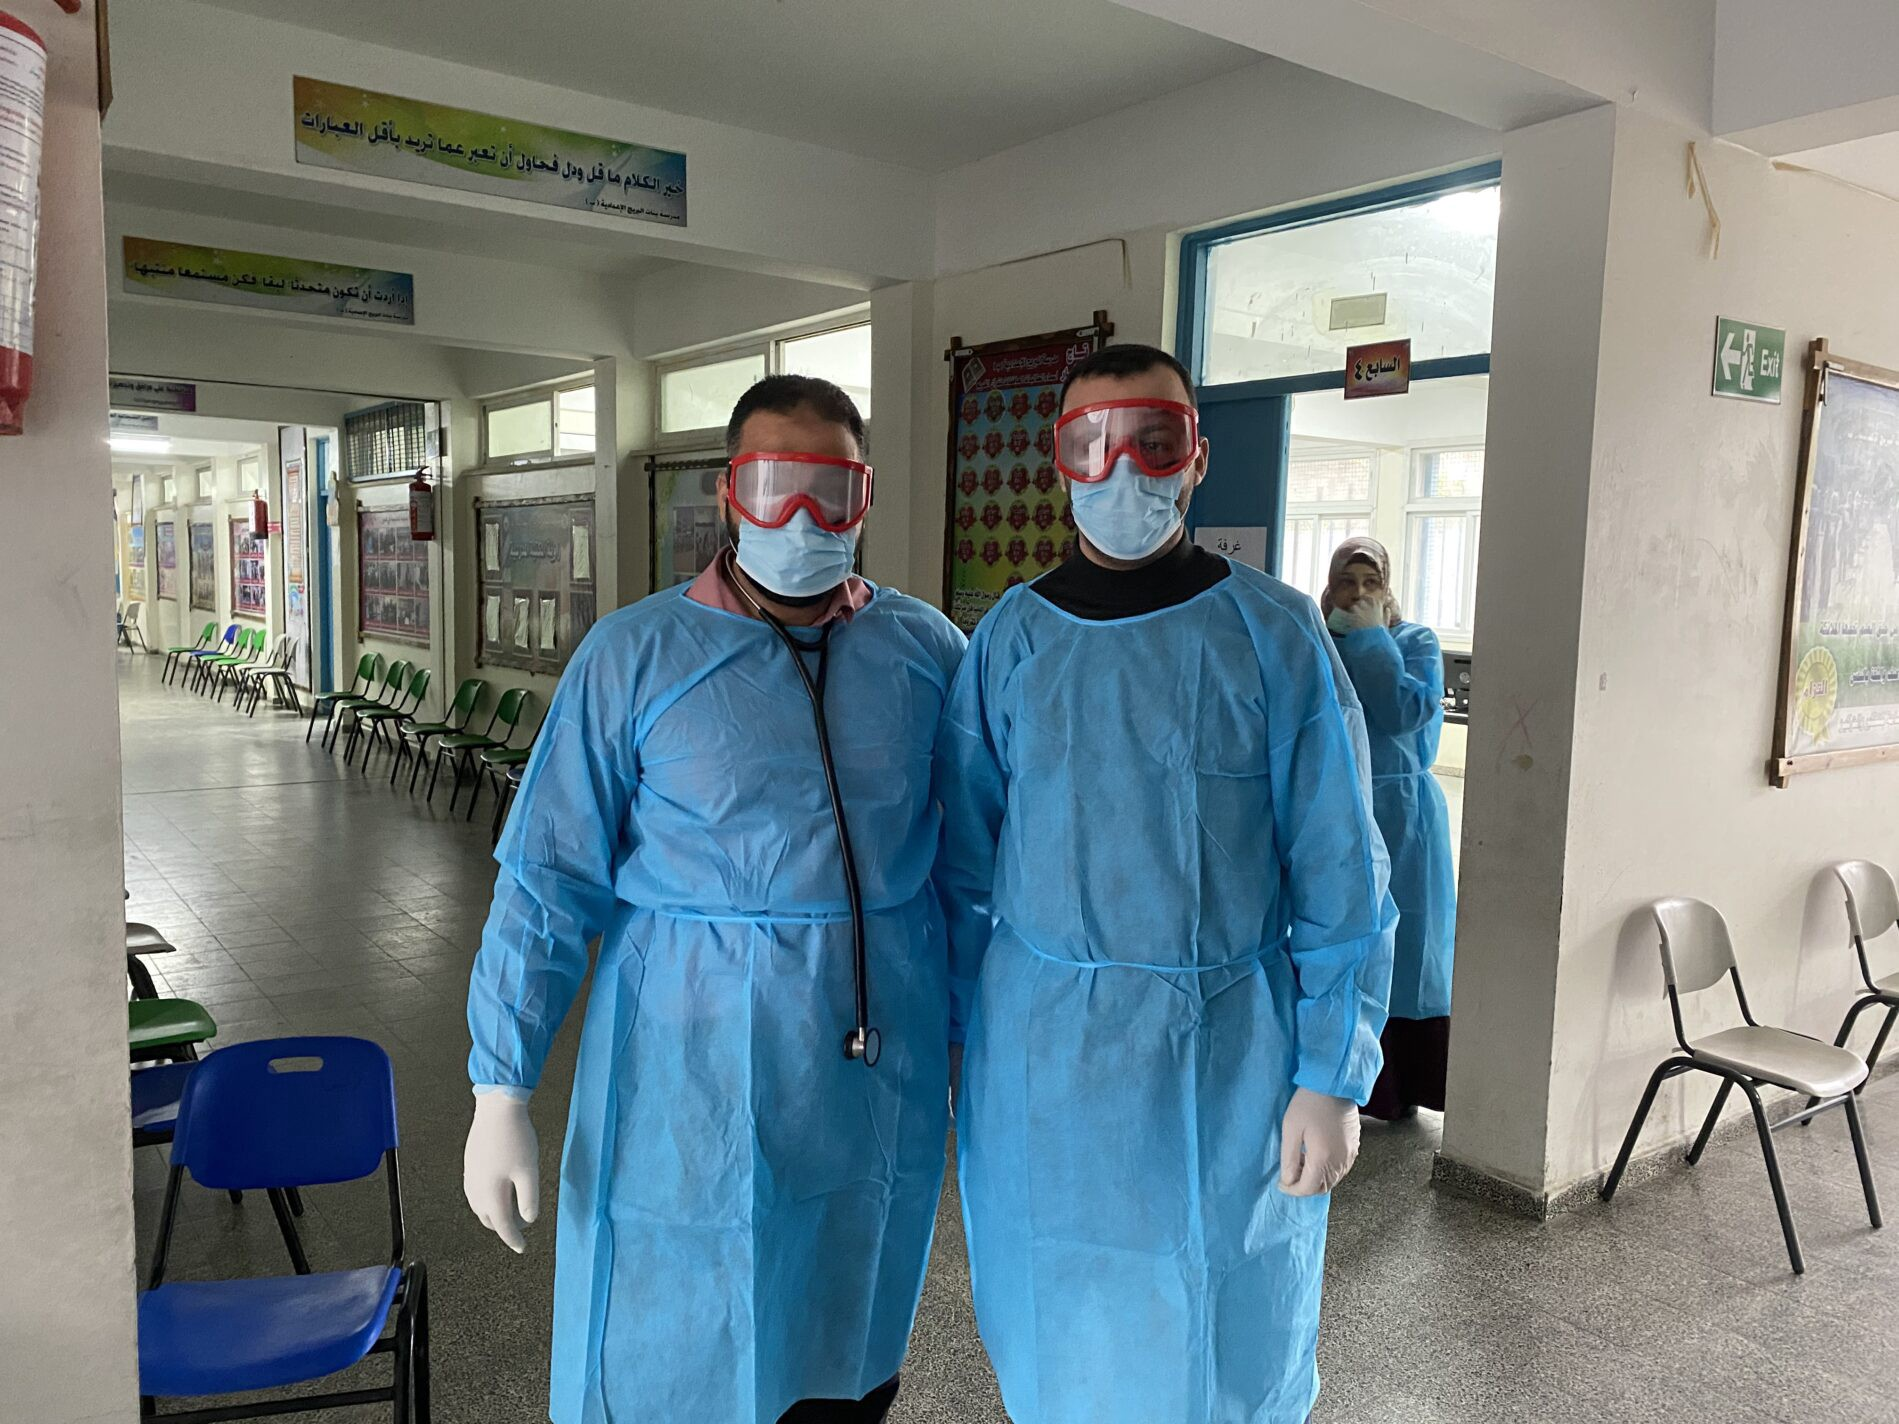 Health staff at Beit Hanoun Health Centre in Gaza wearing full personal protective equipment to protect themselves and others